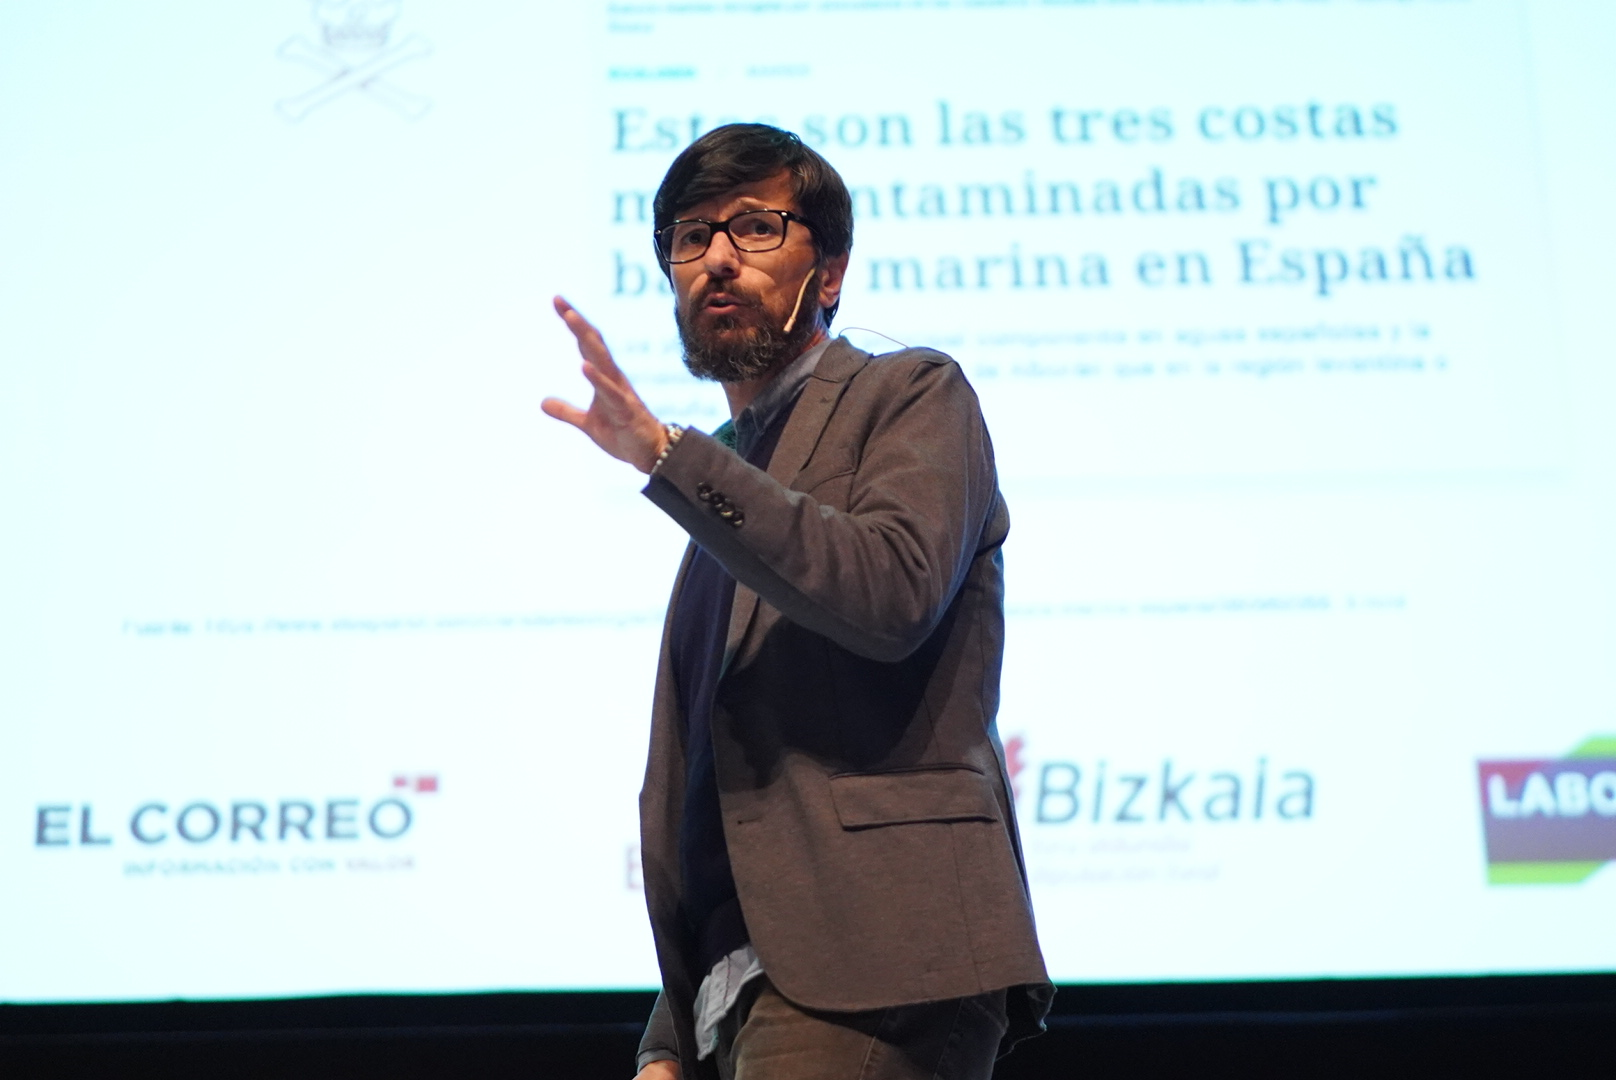 Javier Varela - Marketing Sostenible - Innova Bilbao (Museo Guggenheim)